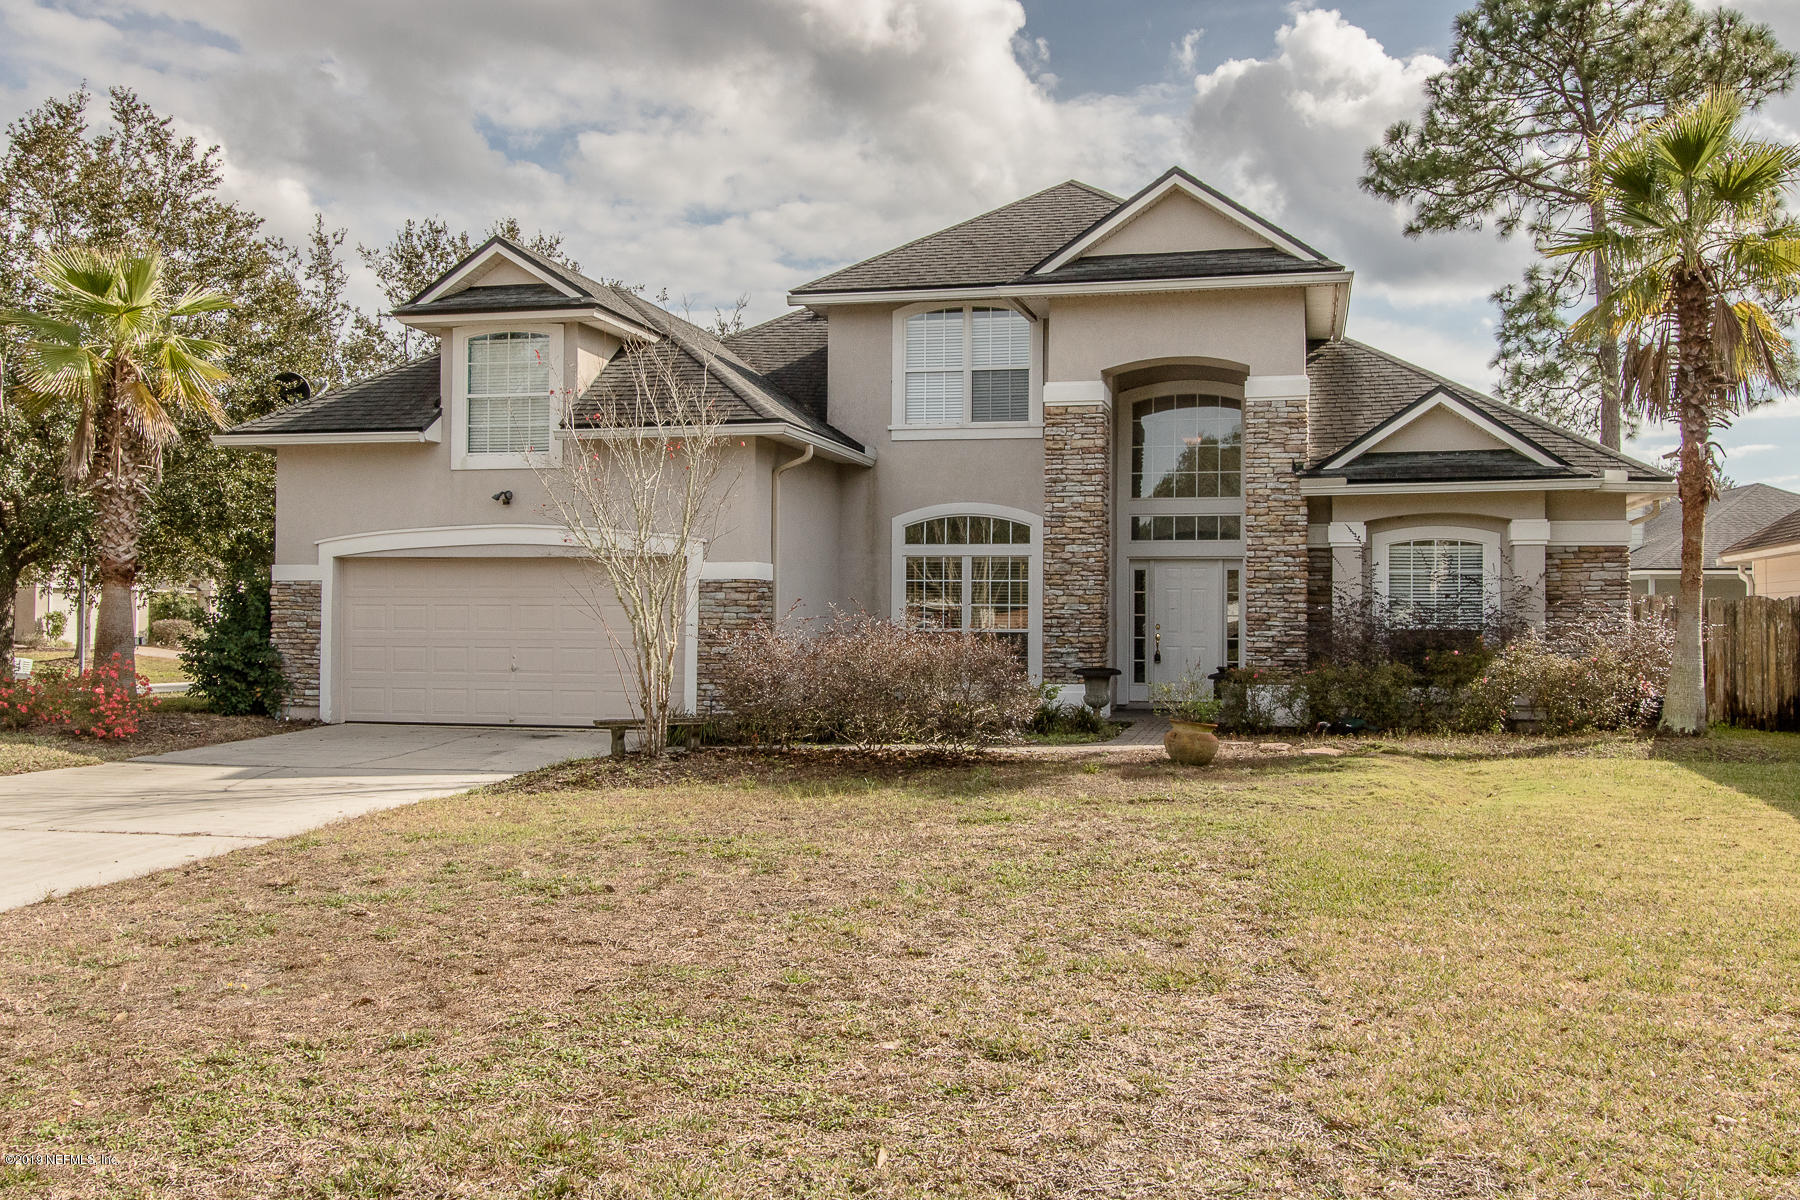 3511 SILVER BLUFF, ORANGE PARK, FLORIDA 32065, 4 Bedrooms Bedrooms, ,2 BathroomsBathrooms,Residential - single family,For sale,SILVER BLUFF,972757